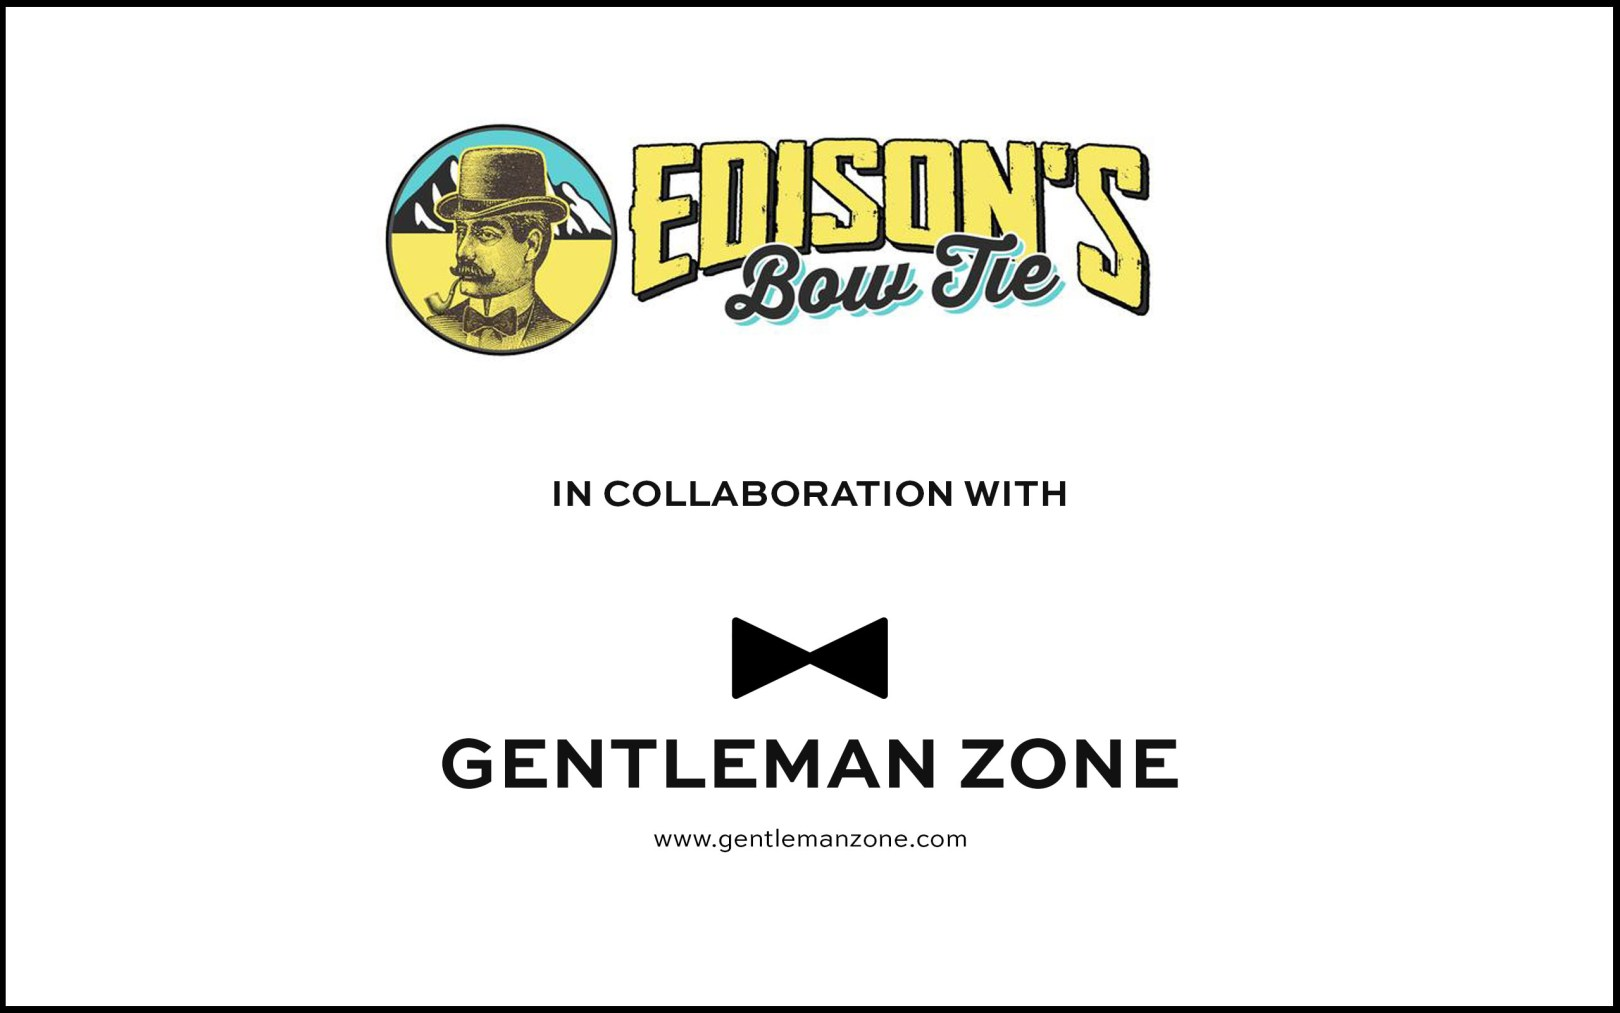 Edison's Bowtie in collaboration with Gentleman Zone